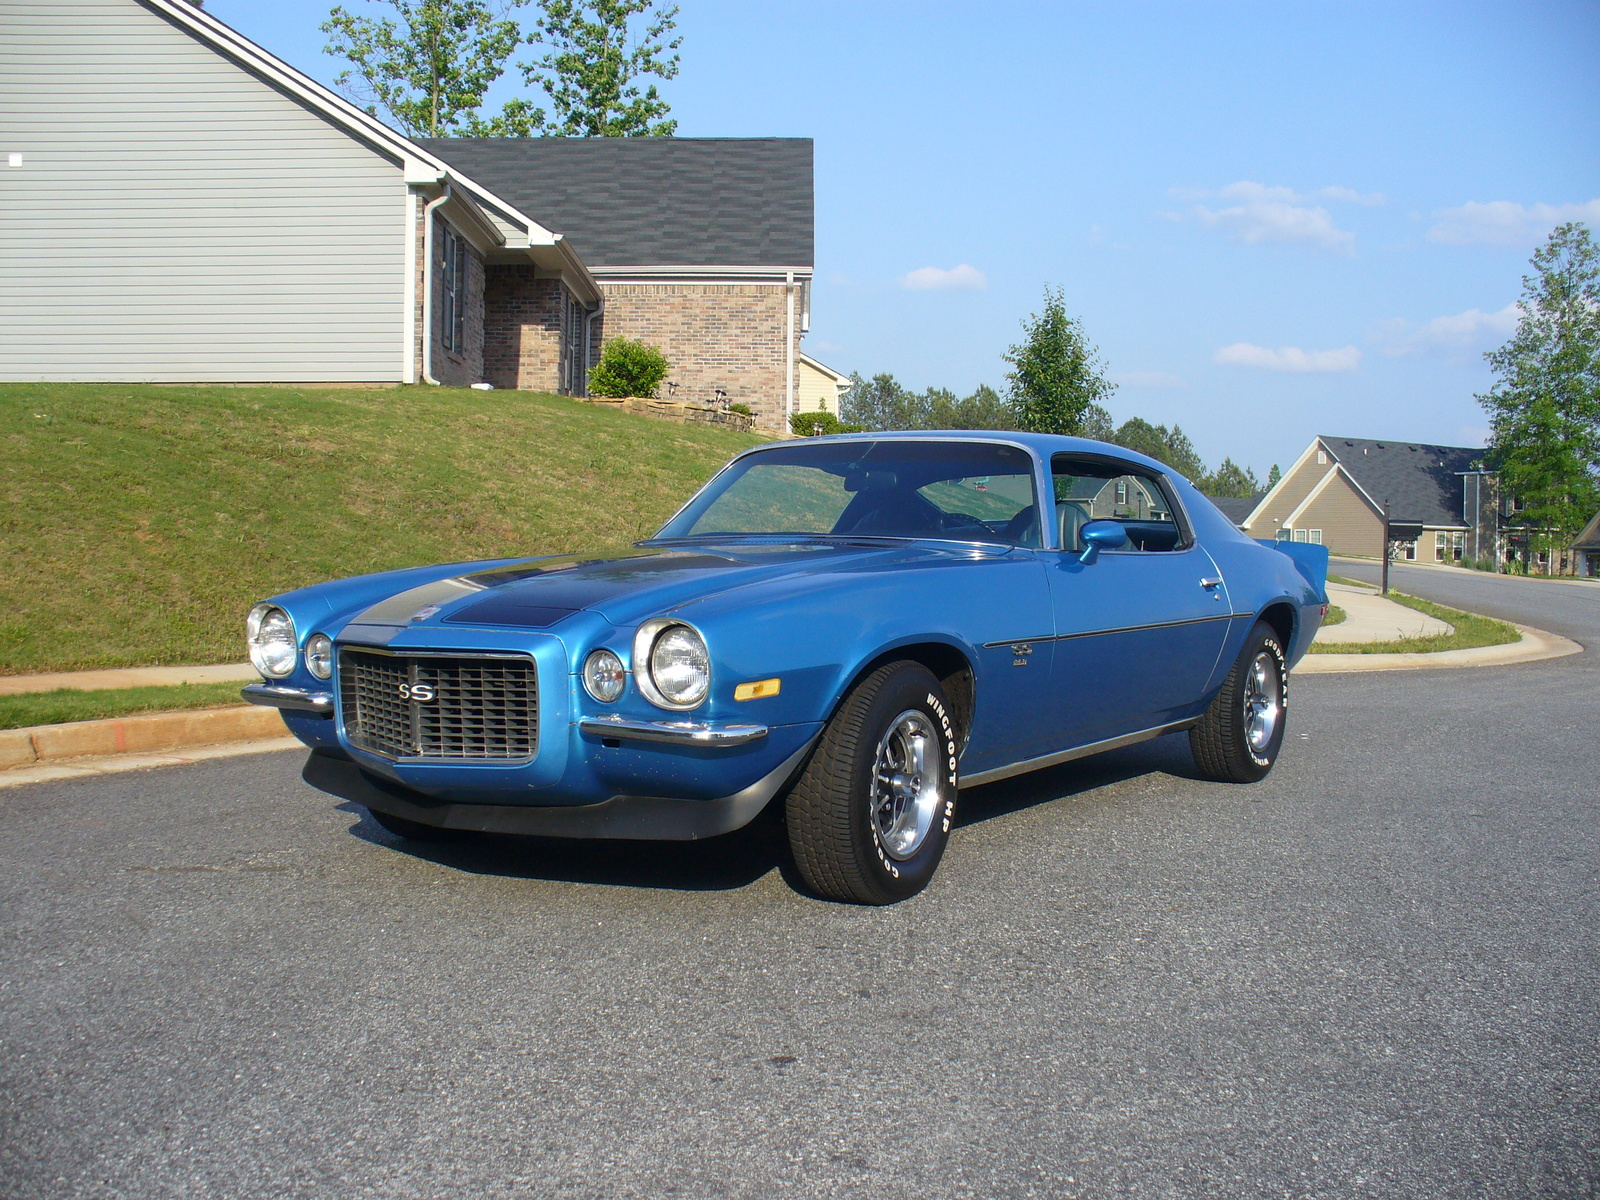 1975 Chevrolet Camaro Pictures C3674 together with 1971 Chevrolet Camaro Pictures C3670 pi35626507 further 1996 Chevrolet Impala Overview C959 in addition 2016 Chrysler 200 Overview C25035 moreover 2017 GMC Sierra 1500 Overview C25947. on used chevrolet vega